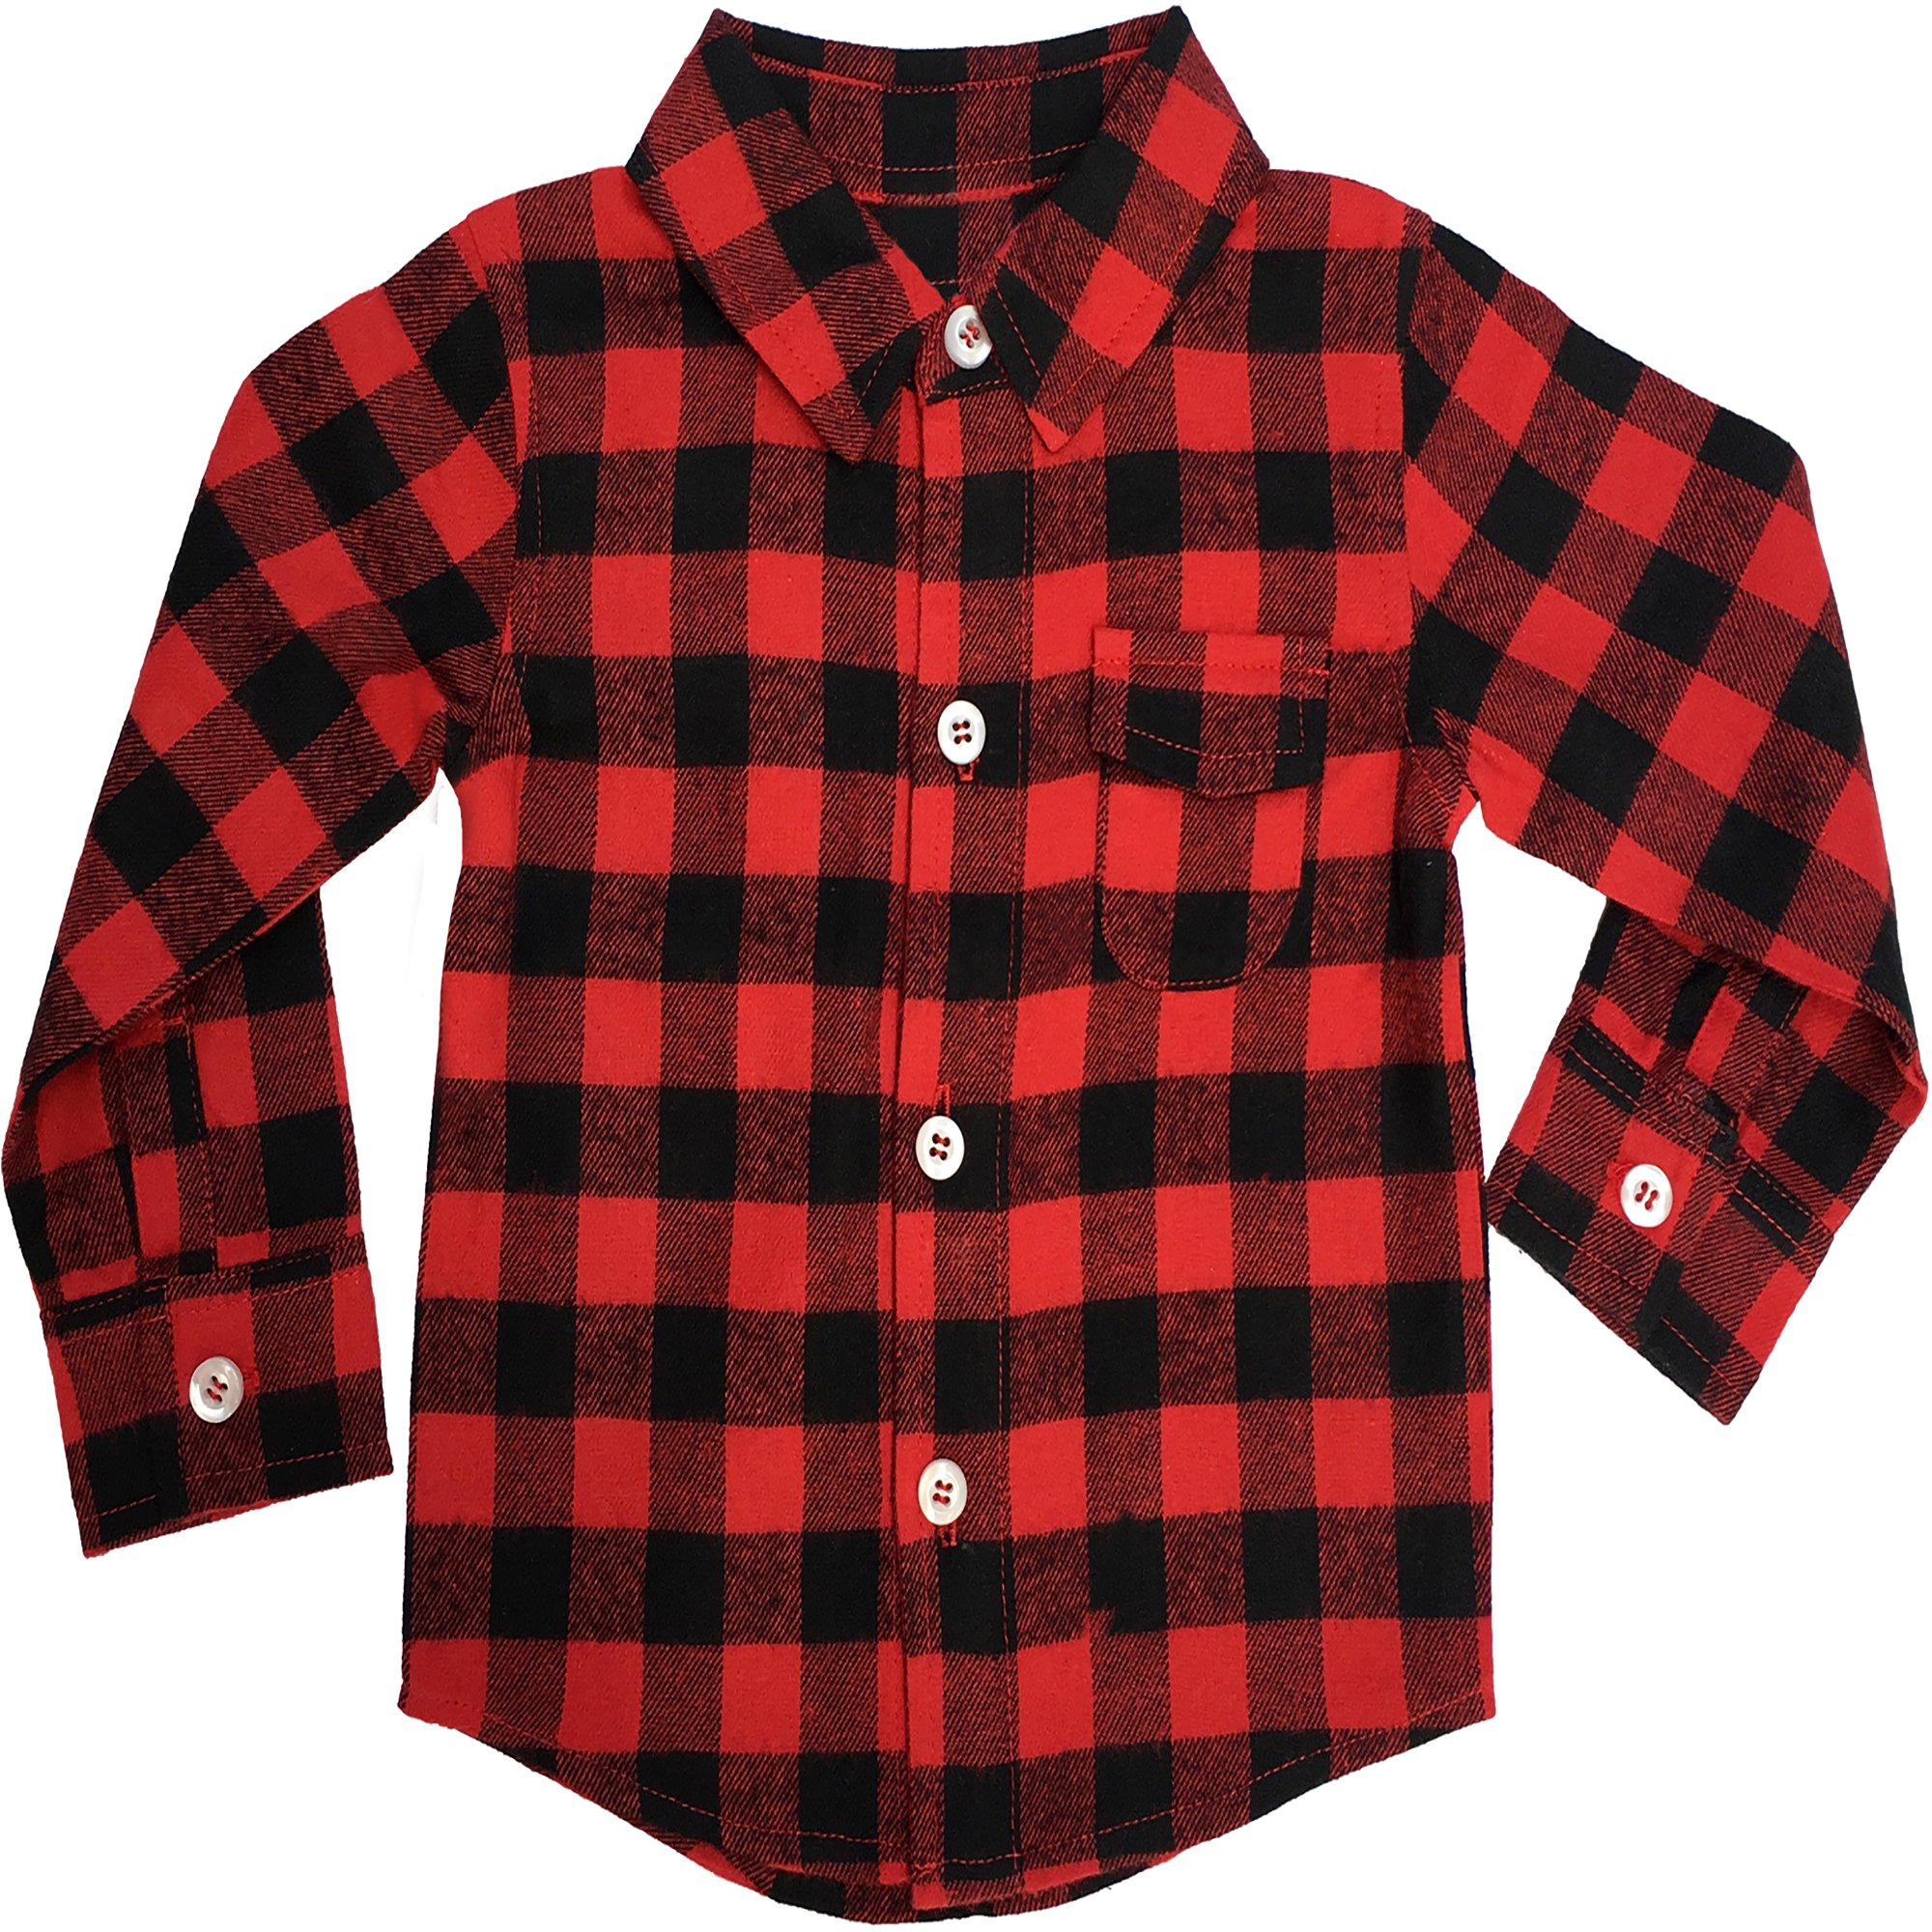 Toddler Flannel Shirt: Toddler Buffalo Plaid for Girl Boy 3T